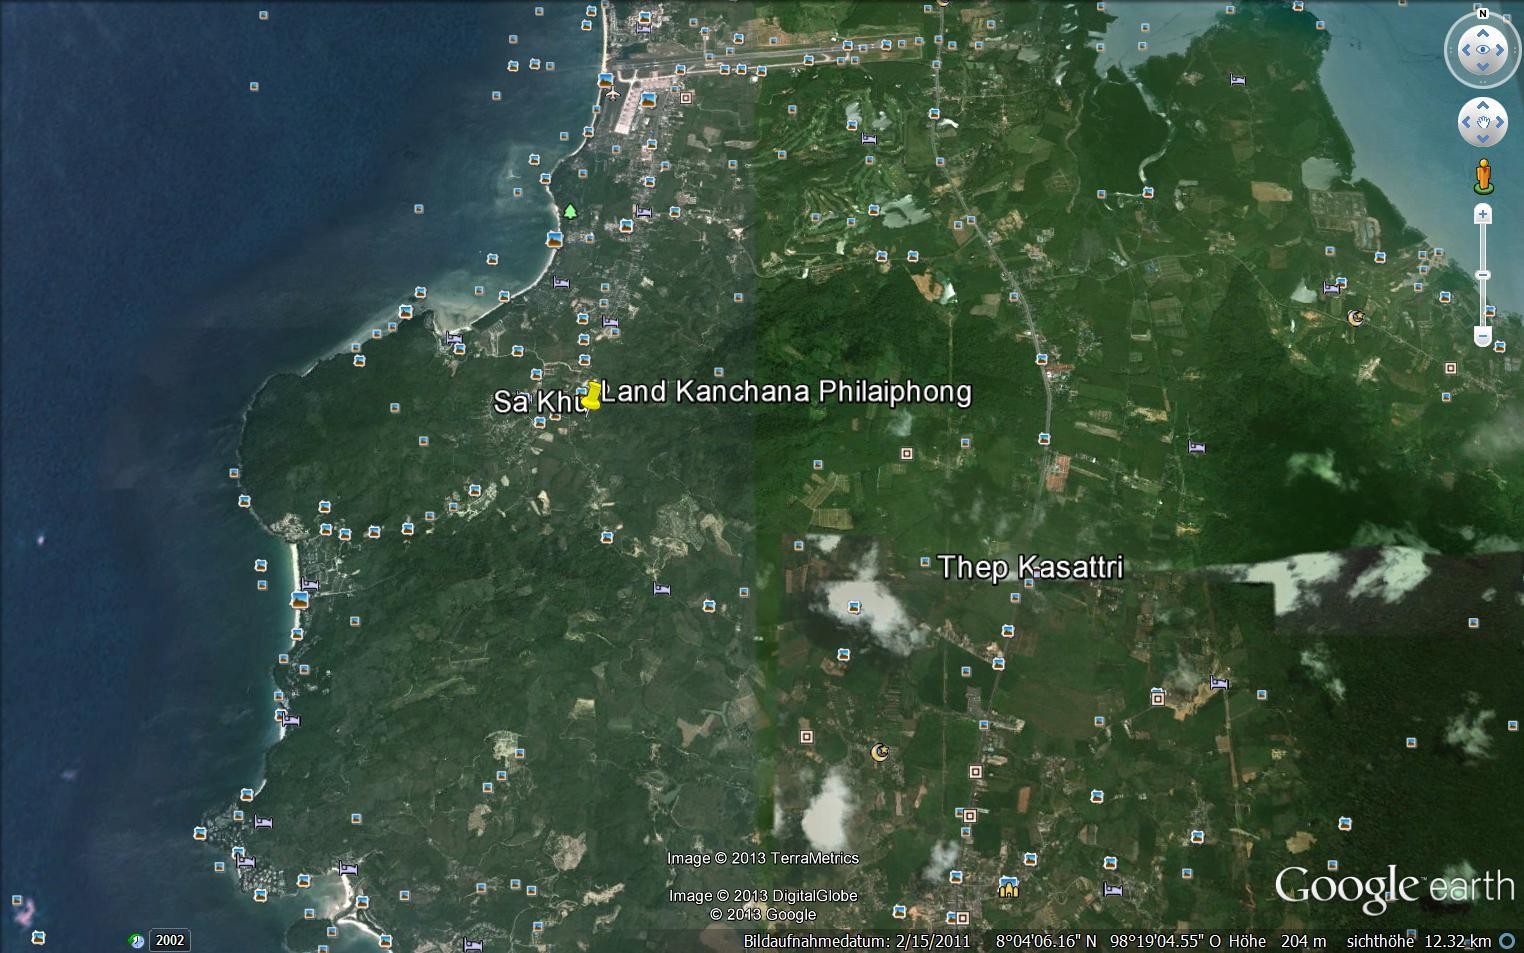 Land for Sale in Phuket-Sakhu, 1 to 5 Rai, Chanote title, 2,6 mill. Baht